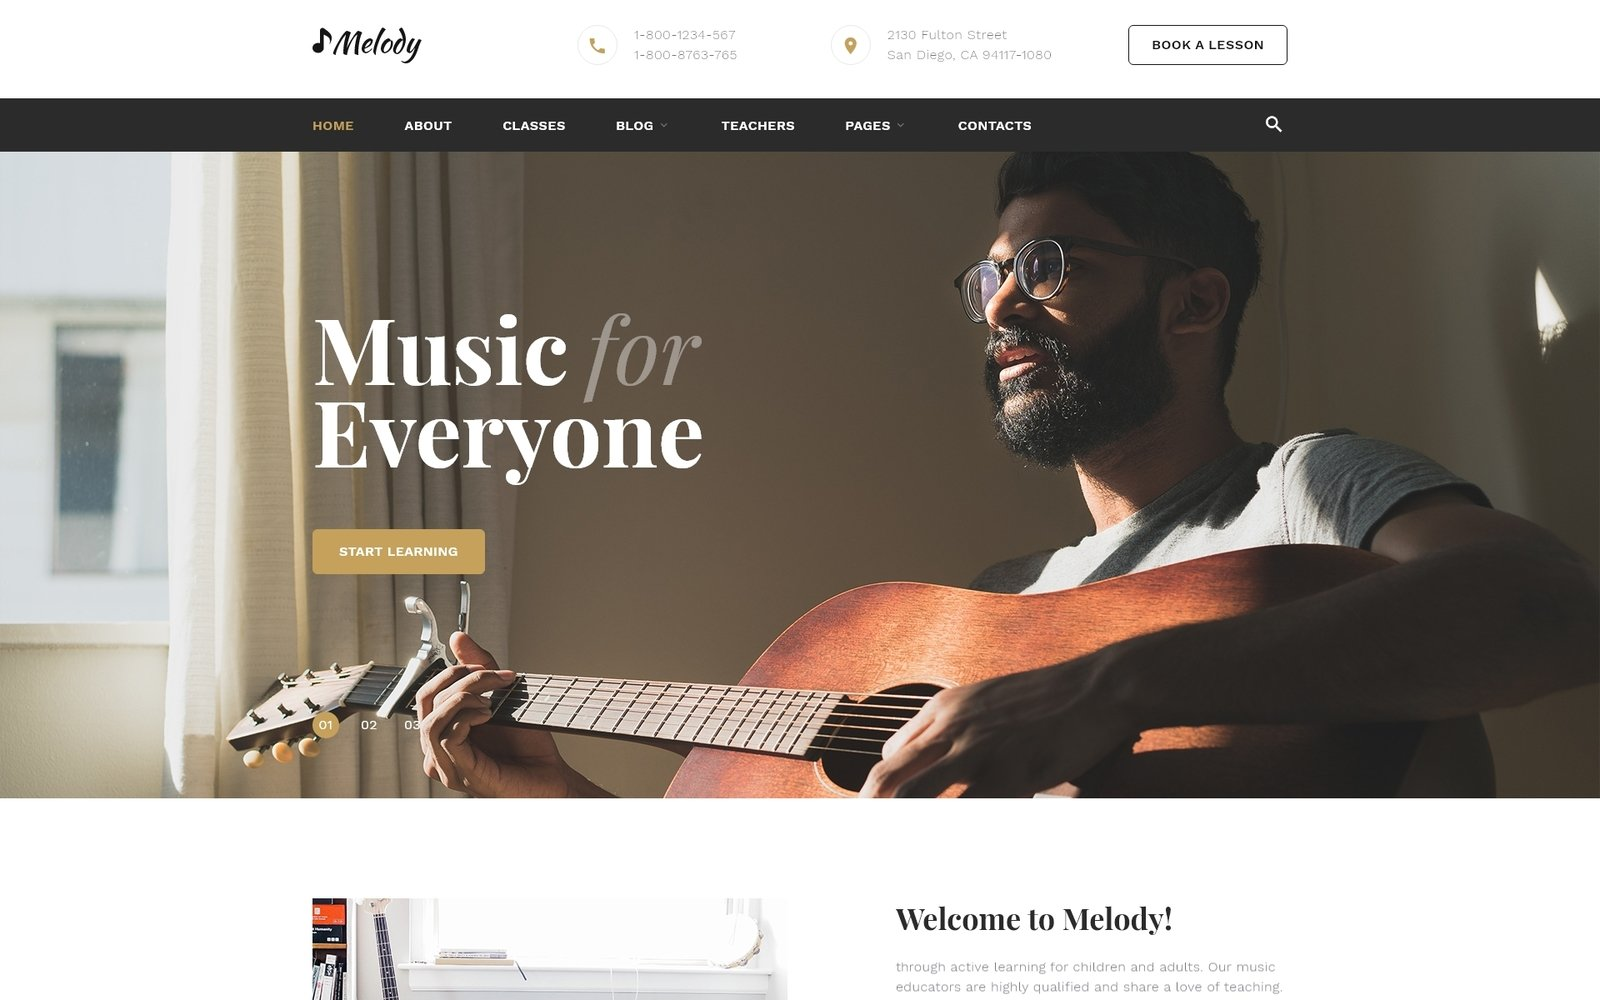 Melody - Music School Multipage HTML5 Website Template - screenshot